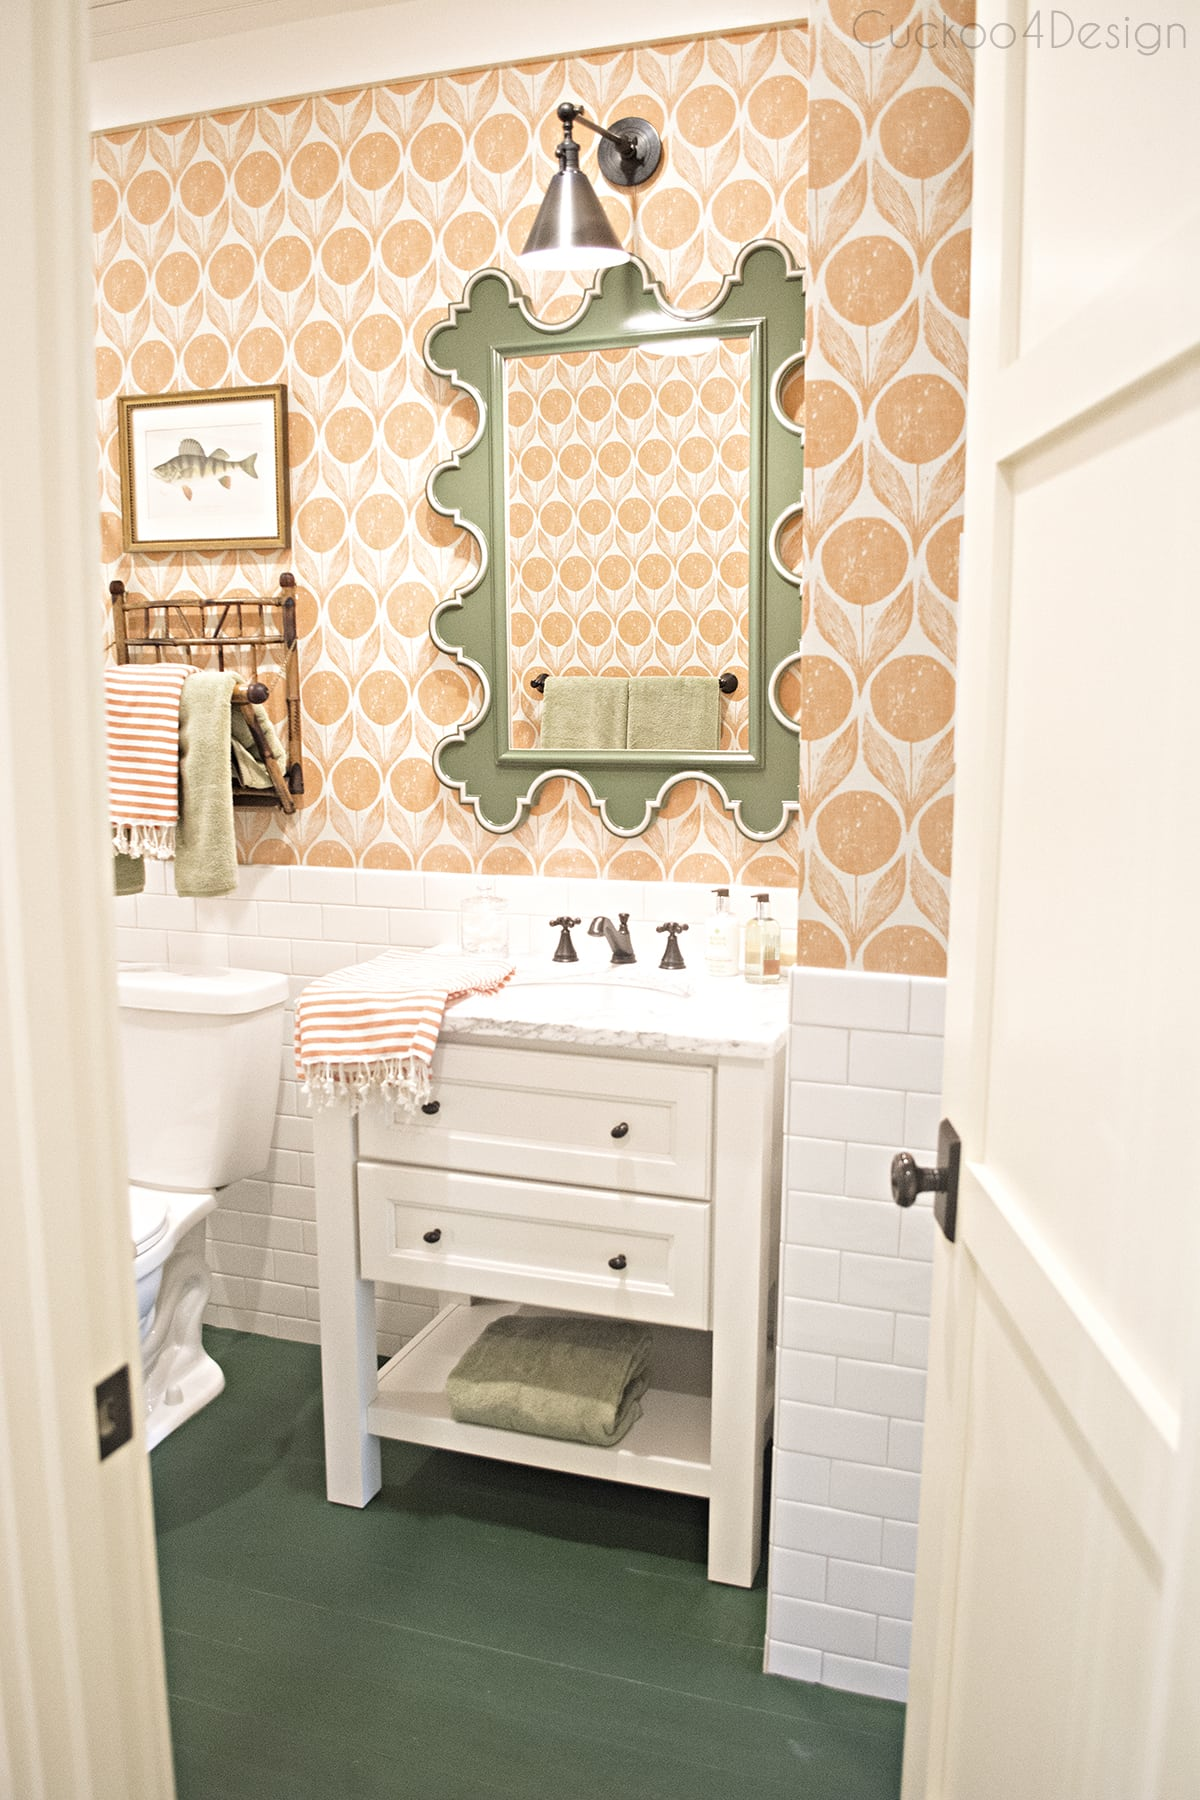 Romo Clementine wallpaper, green scalloped mirror with orange wallpaper in bathroom